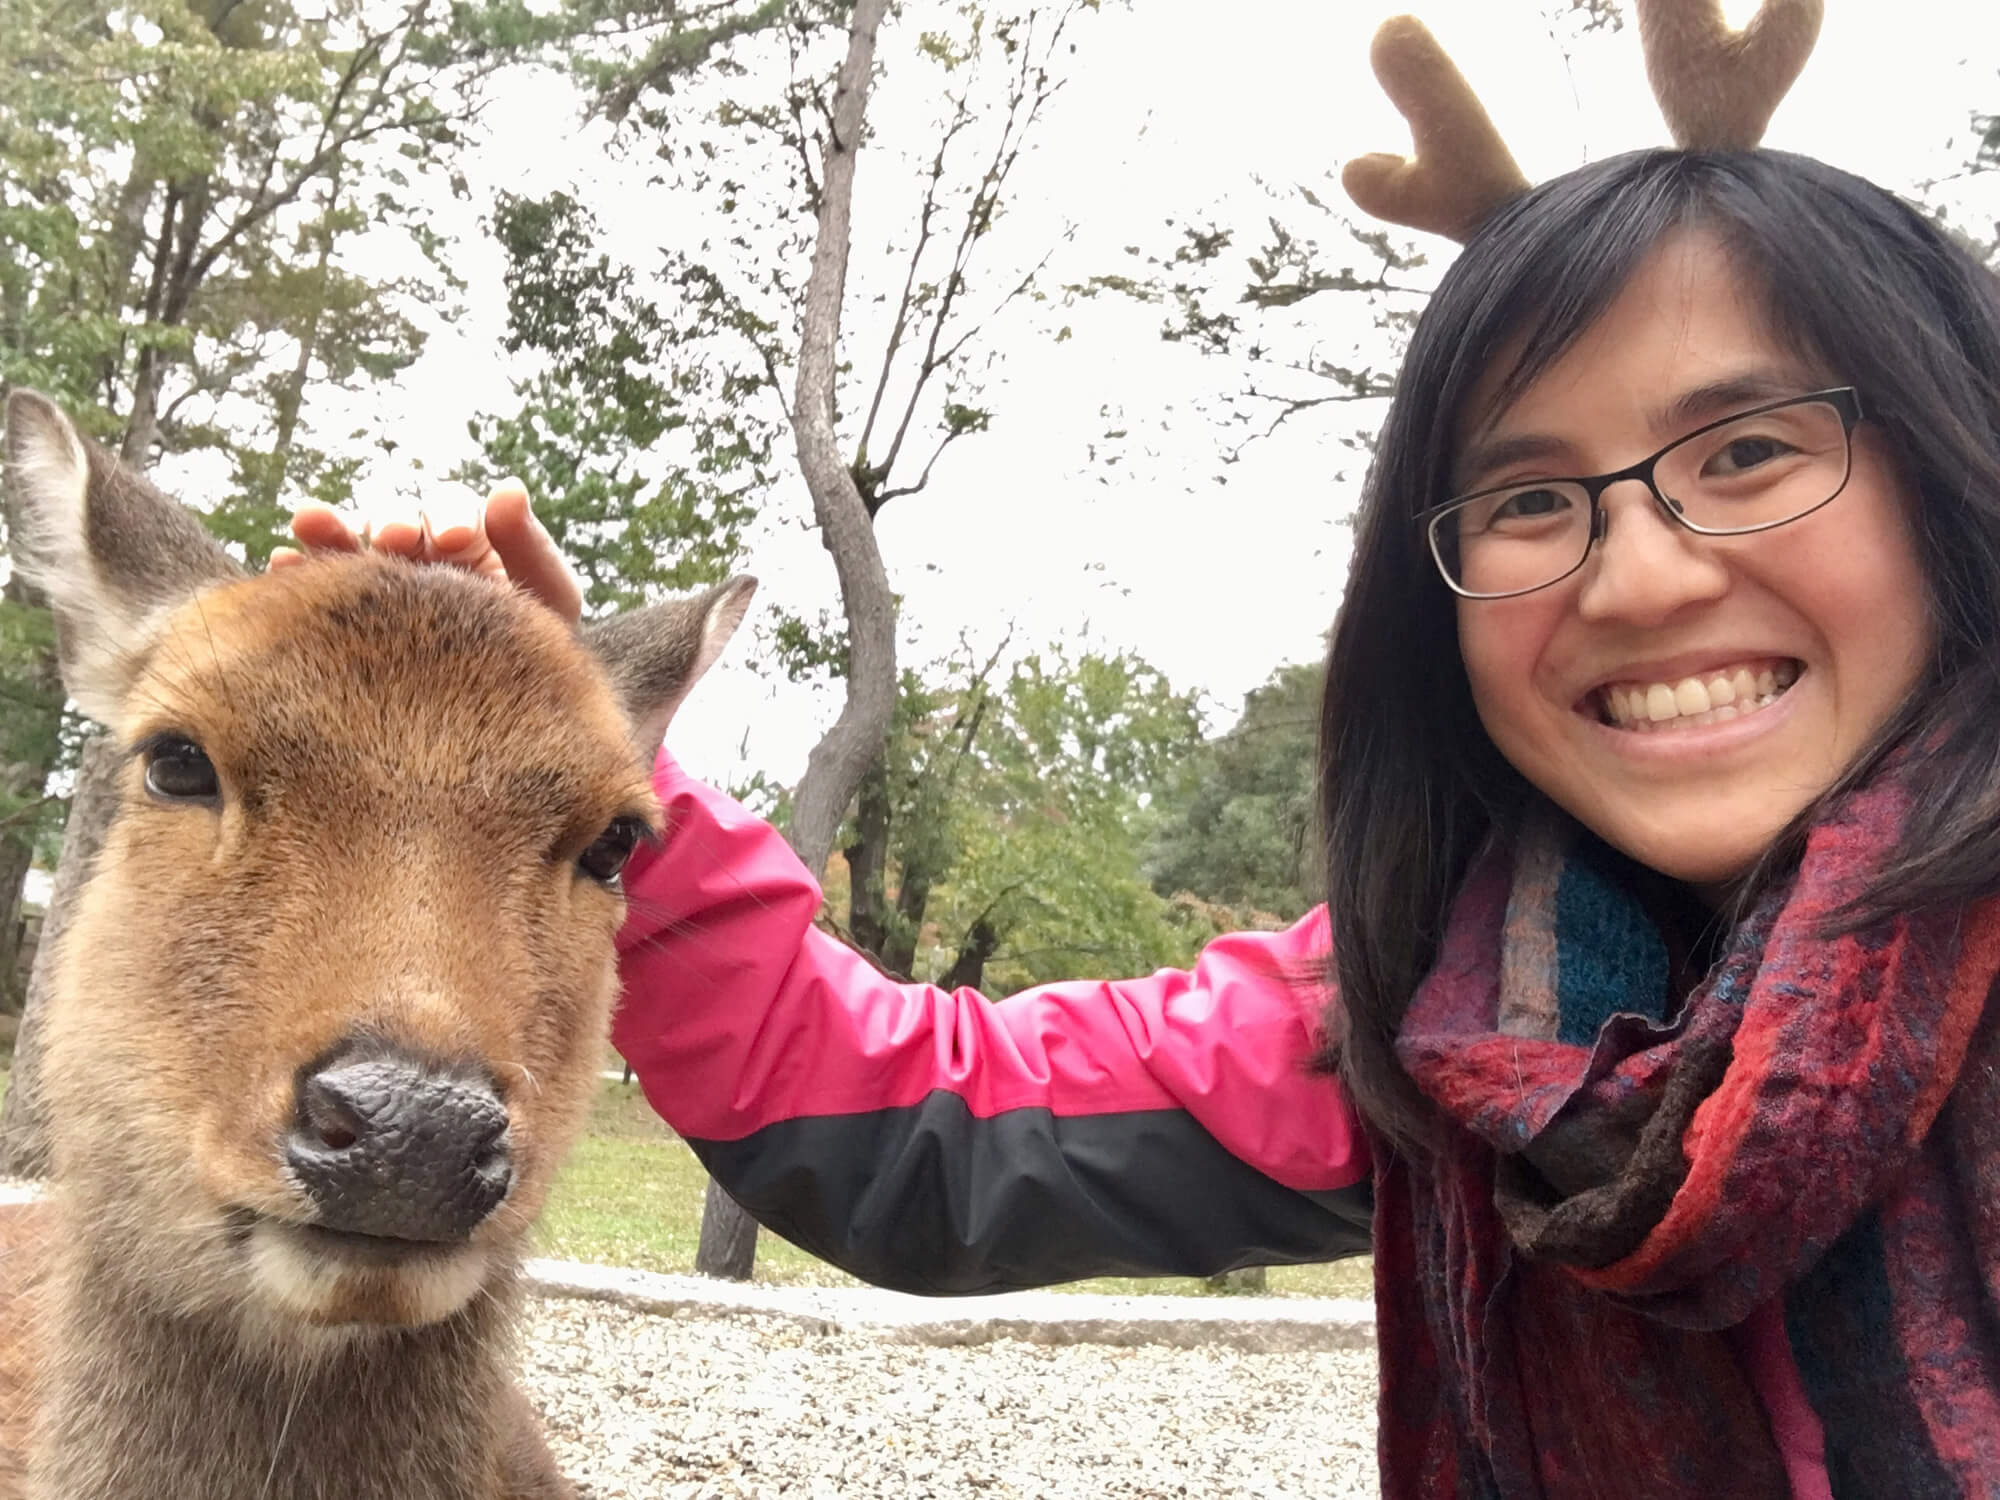 A woman with glasses, smiling and patting a deer